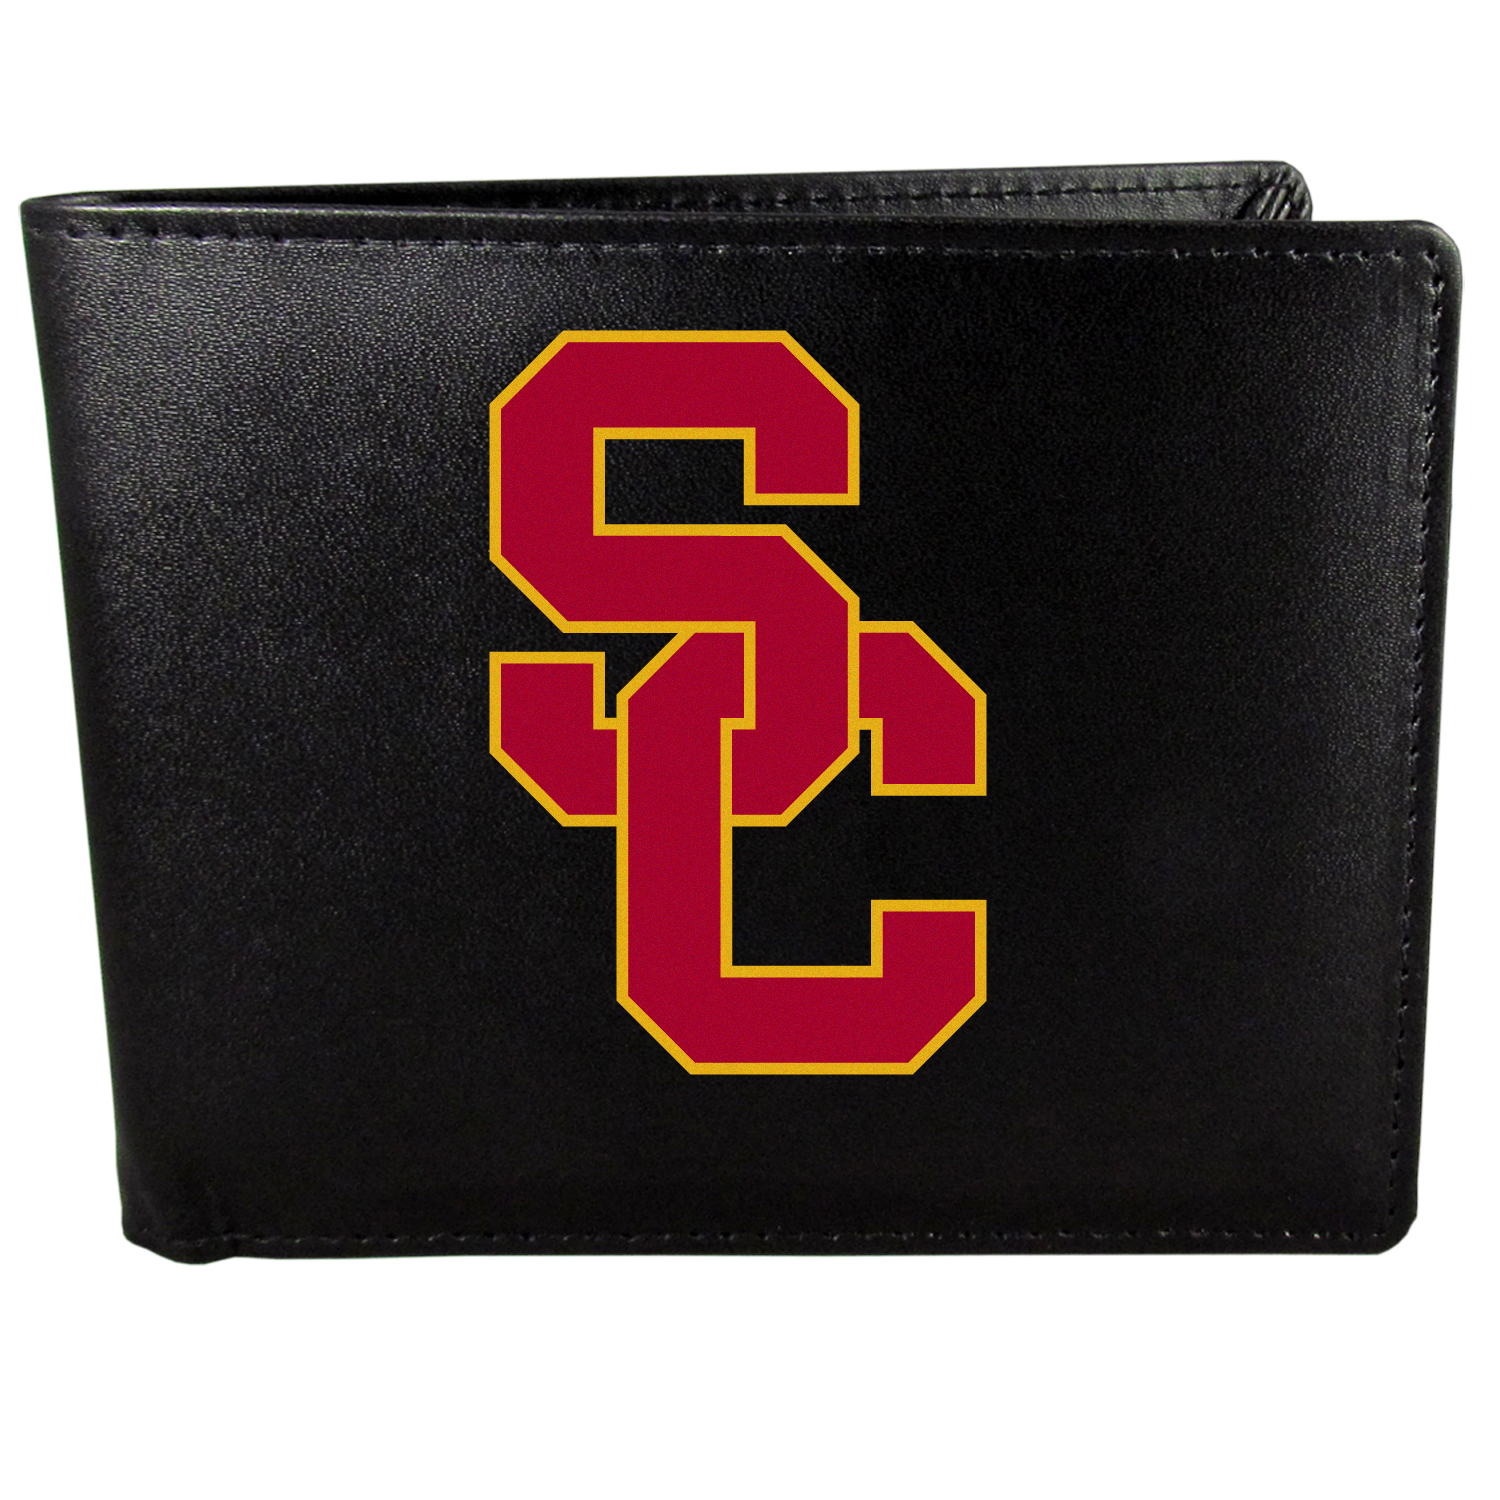 USC Trojans Bi-fold Wallet Large Logo - Sports fans do not have to sacrifice style with this classic bi-fold wallet that sports the USC Trojans extra large logo. This men's fashion accessory has a leather grain look and expert craftmanship for a quality wallet at a great price. The wallet features inner credit card slots, windowed ID slot and a large billfold pocket. The front of the wallet features a printed team logo.